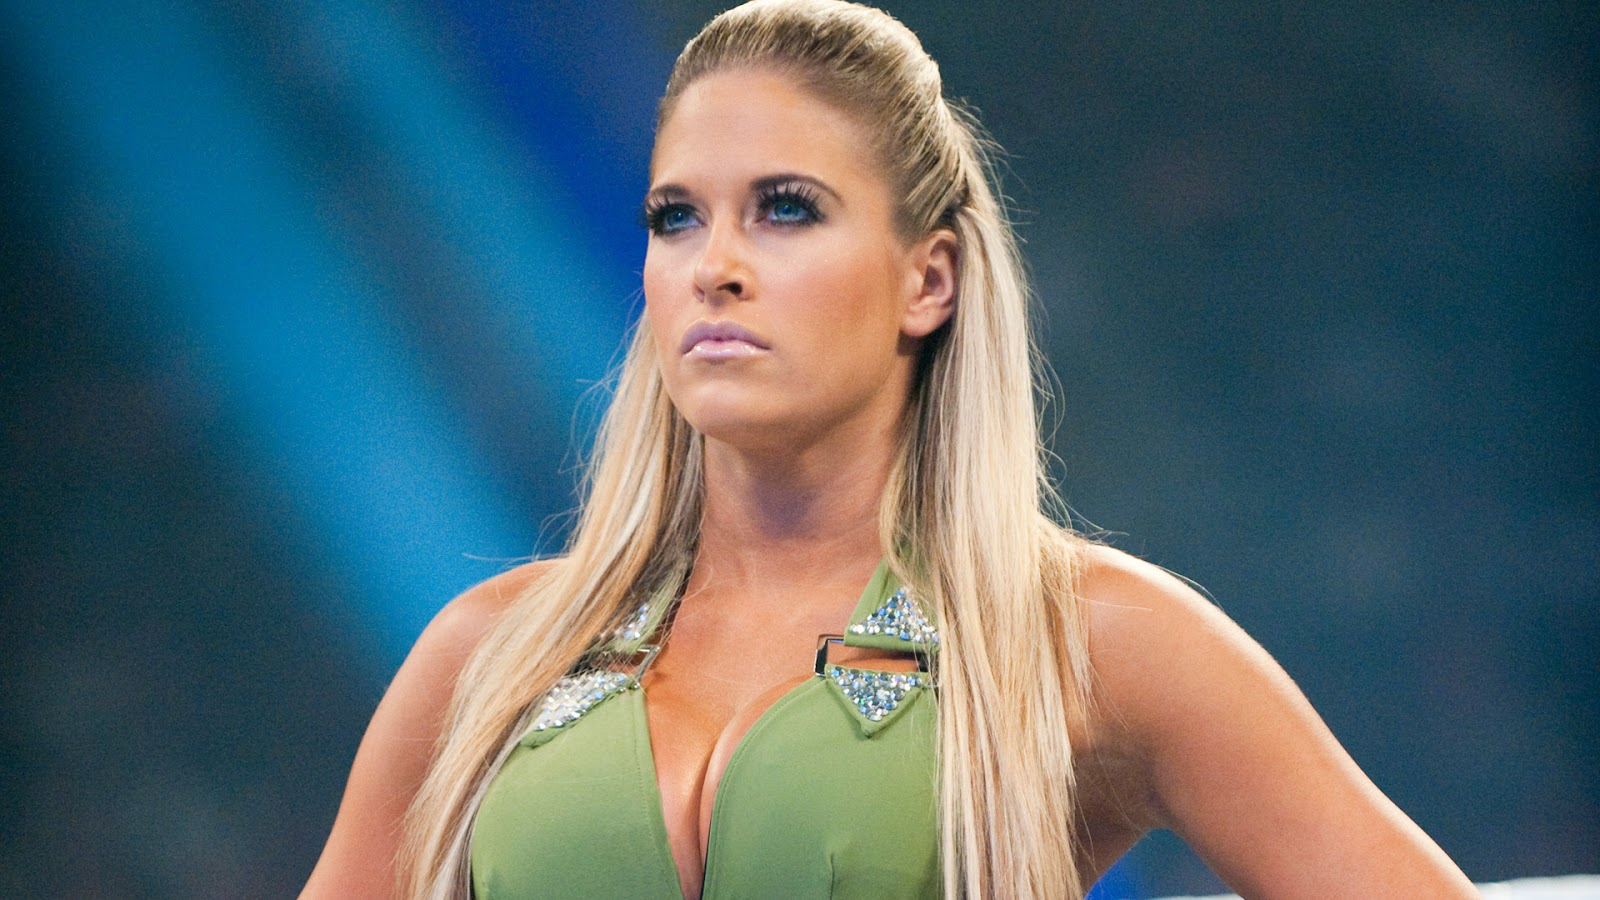 kelly kelly diva champion latest hd wallpapers 2013 all